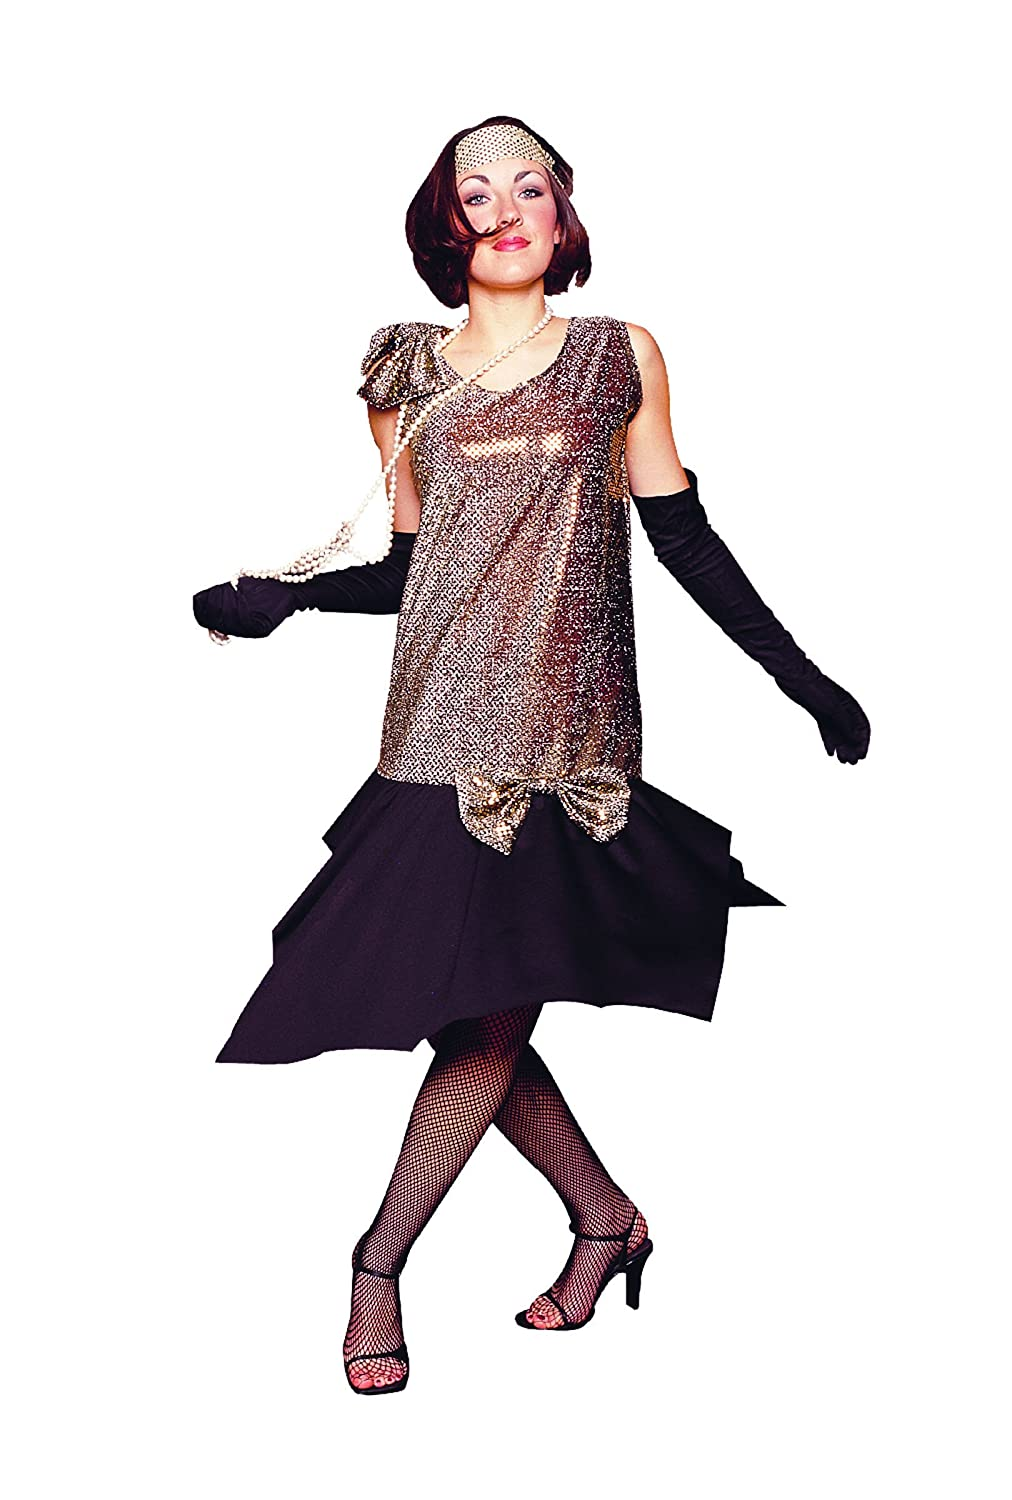 Roaring 20s Costumes- Flapper Costumes, Gangster Costumes Rag Time Flapper $28.30 AT vintagedancer.com